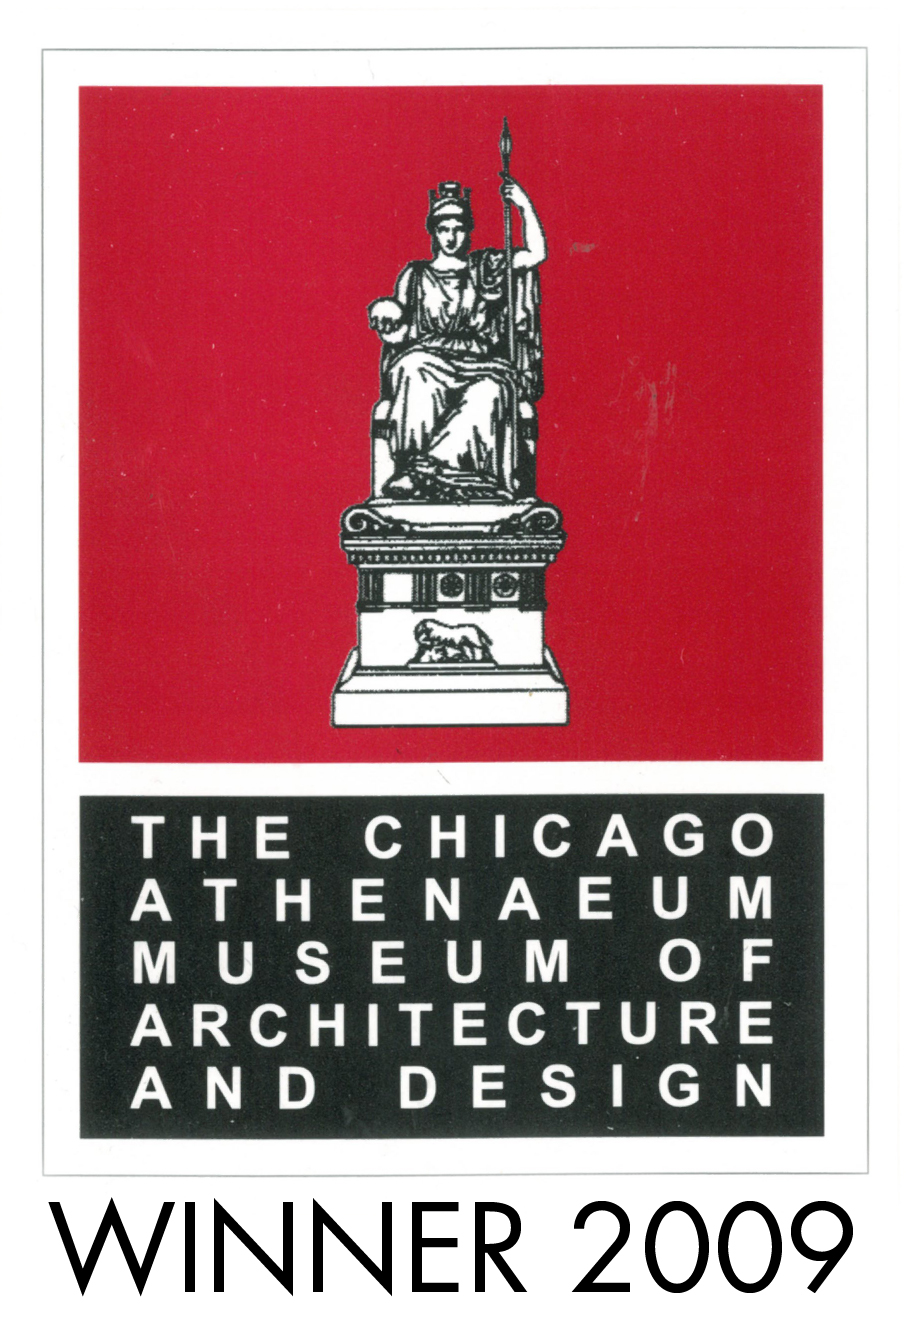 THe Chicago Athenaeum Museam Logo2009.jpg